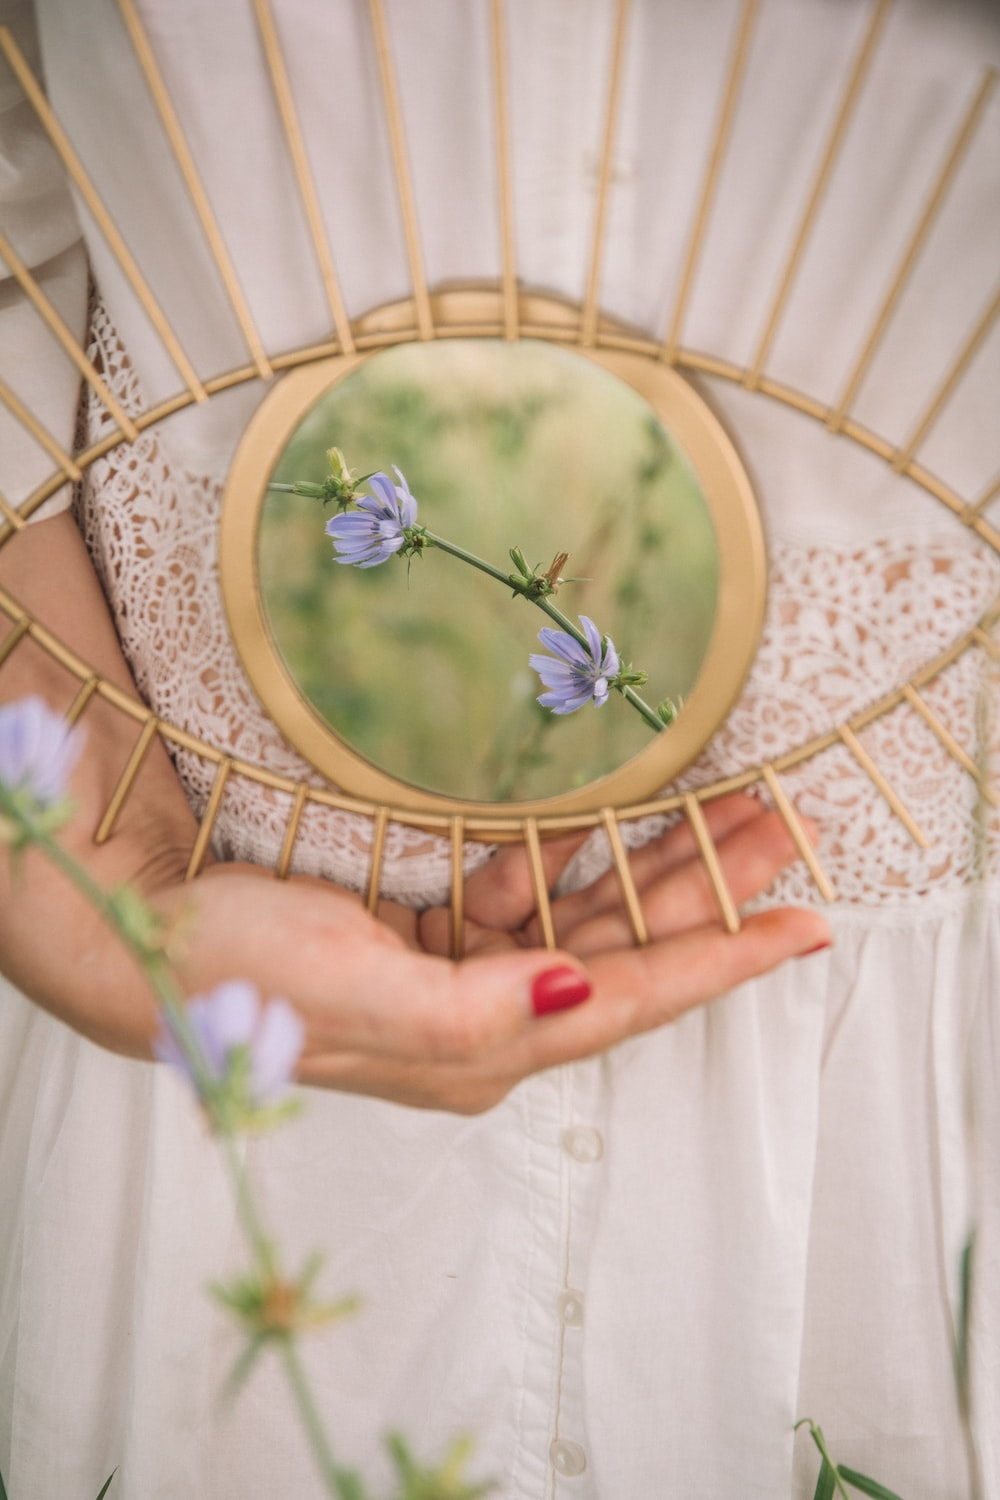 person holding gold framed round mirror